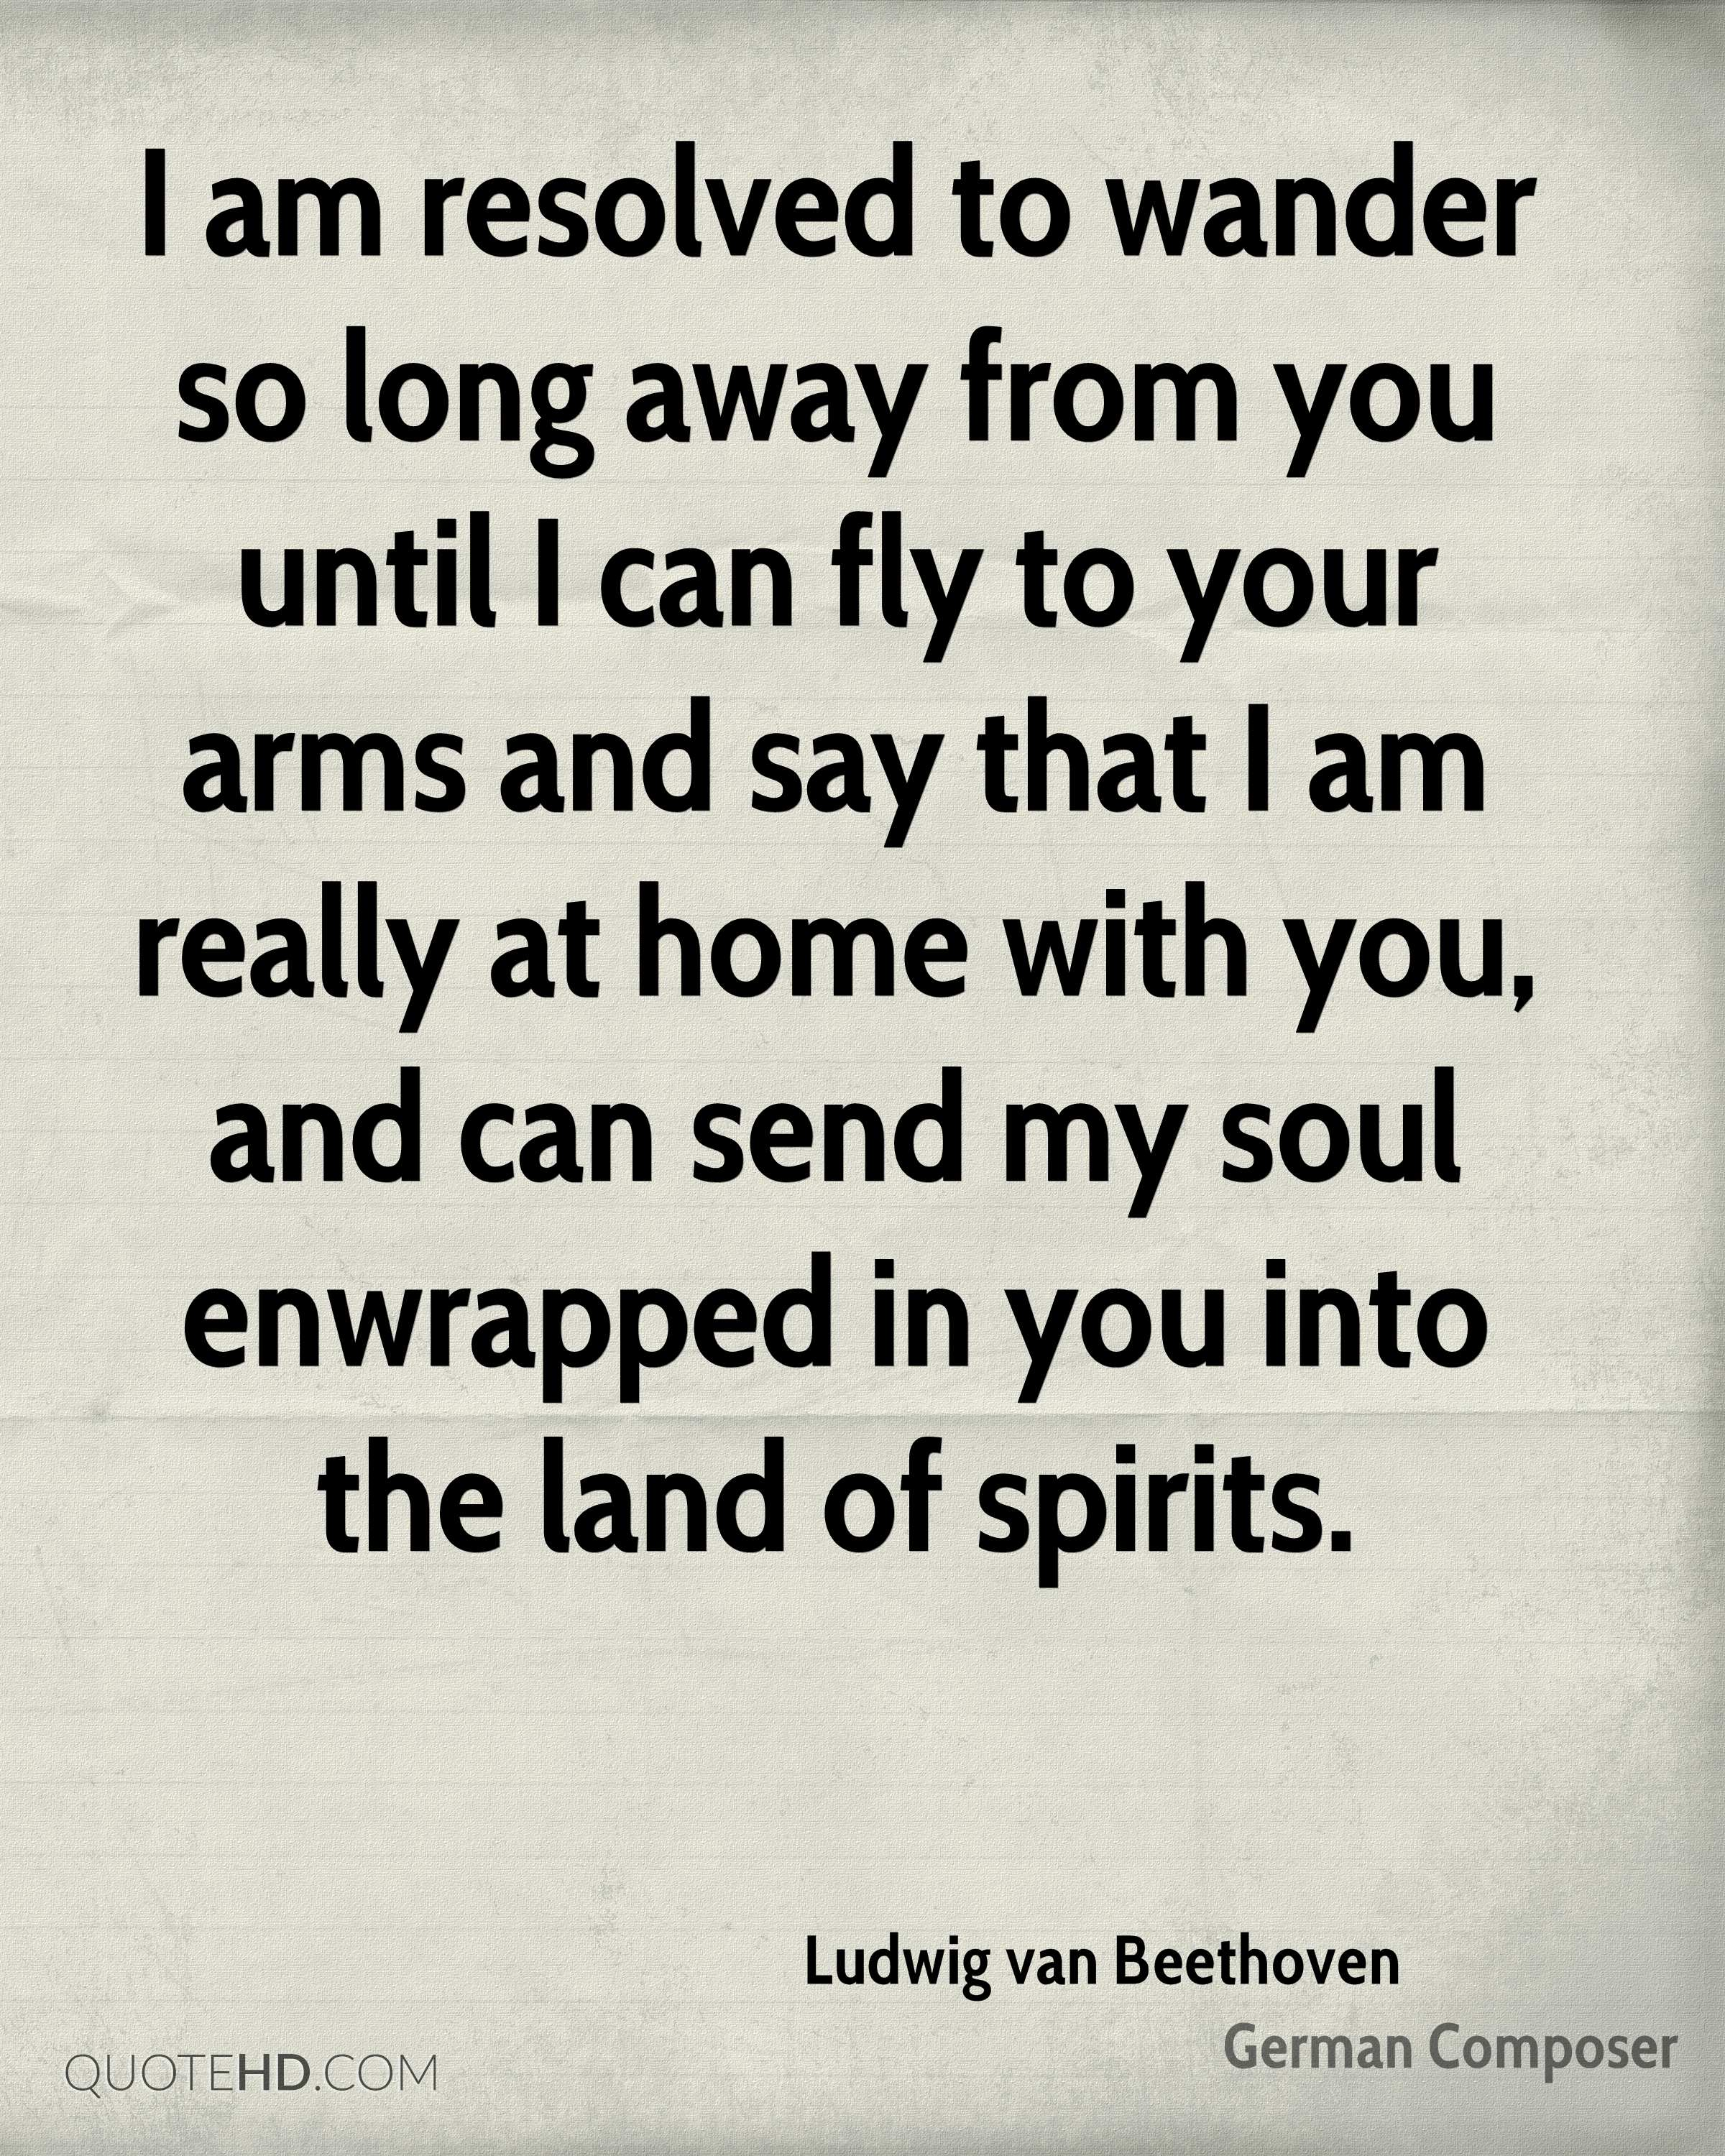 I am resolved to wander so long away from you until I can fly to your arms and say that I am really at home with you, and can send my soul enwrapped in you into the land of spirits.